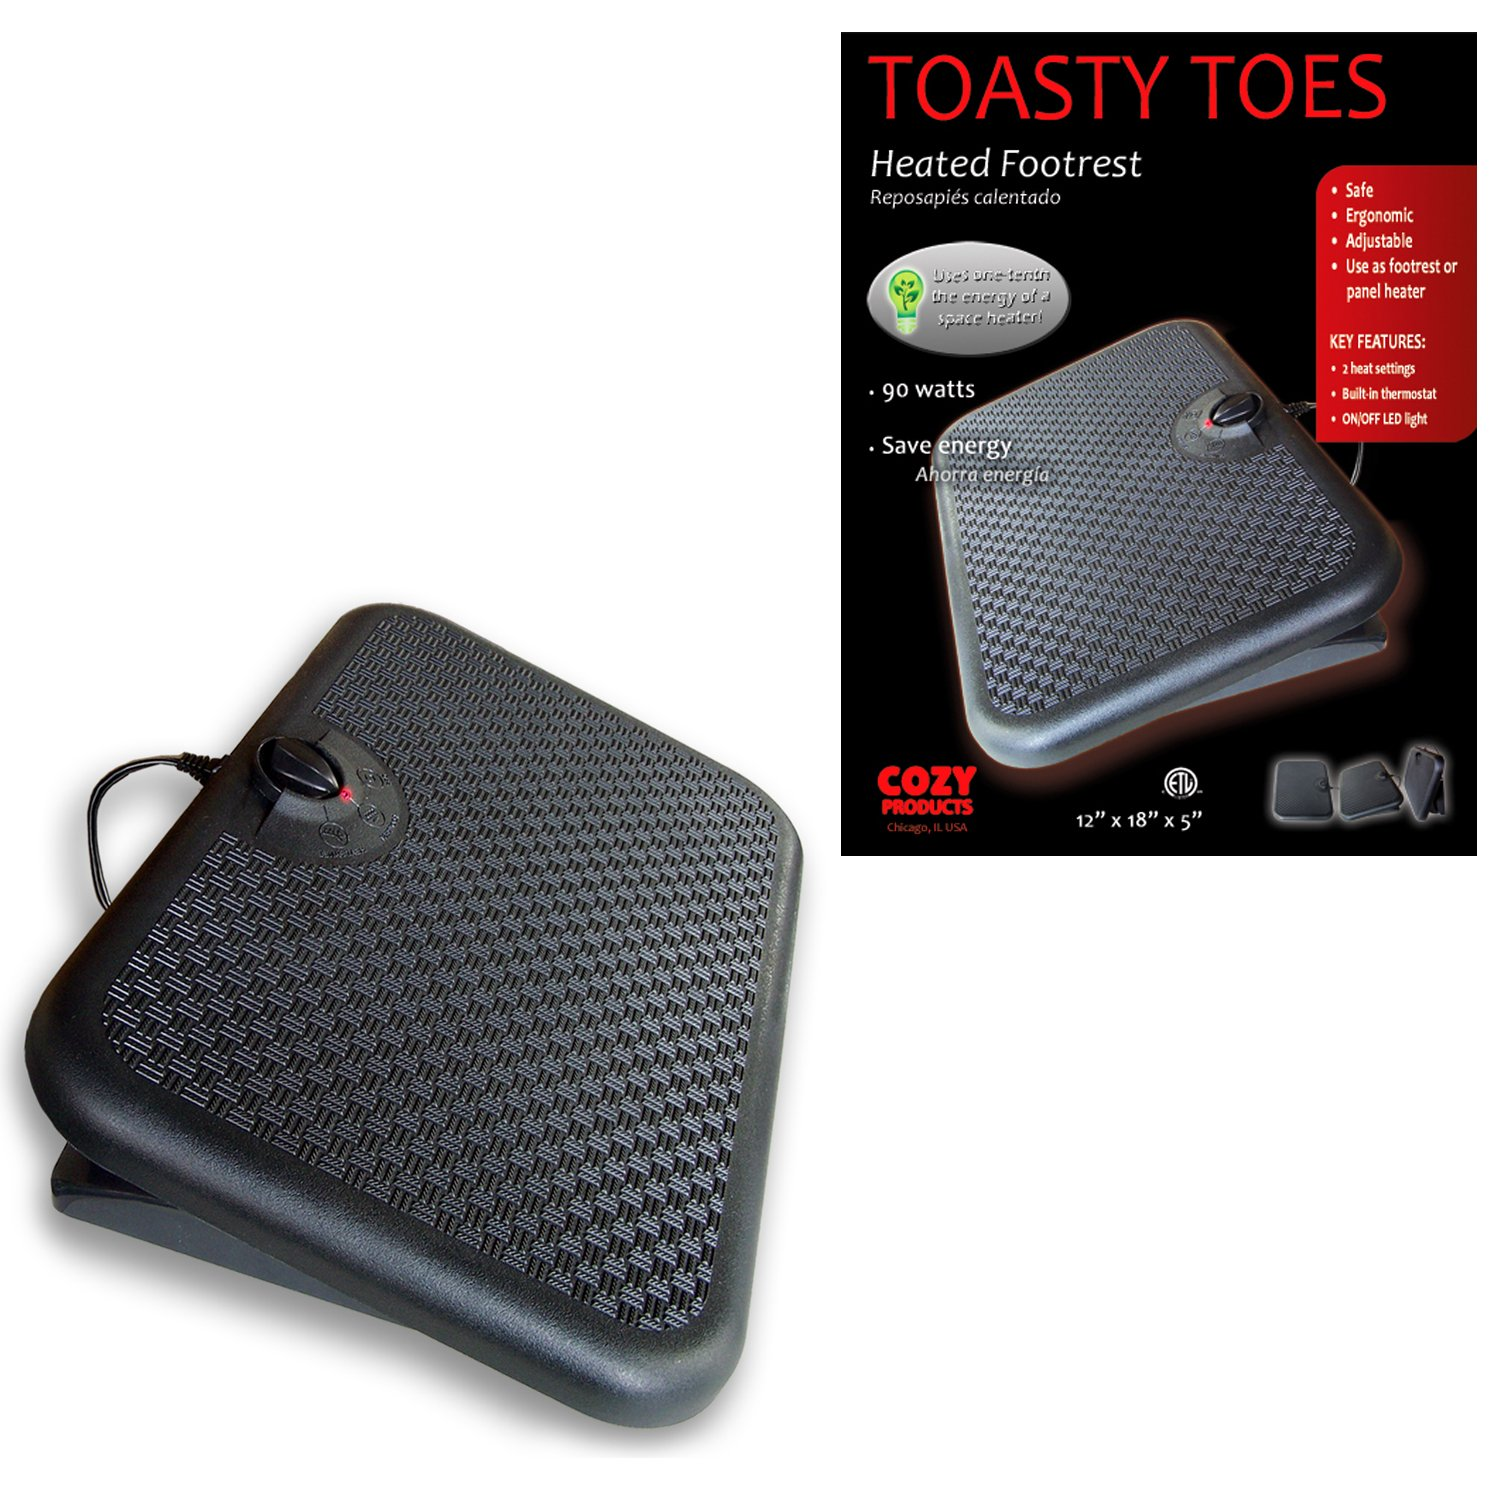 Cozy Products TT Toasty Toes Ergonomic Heated Foot Warmer by Cozy (Image #2)